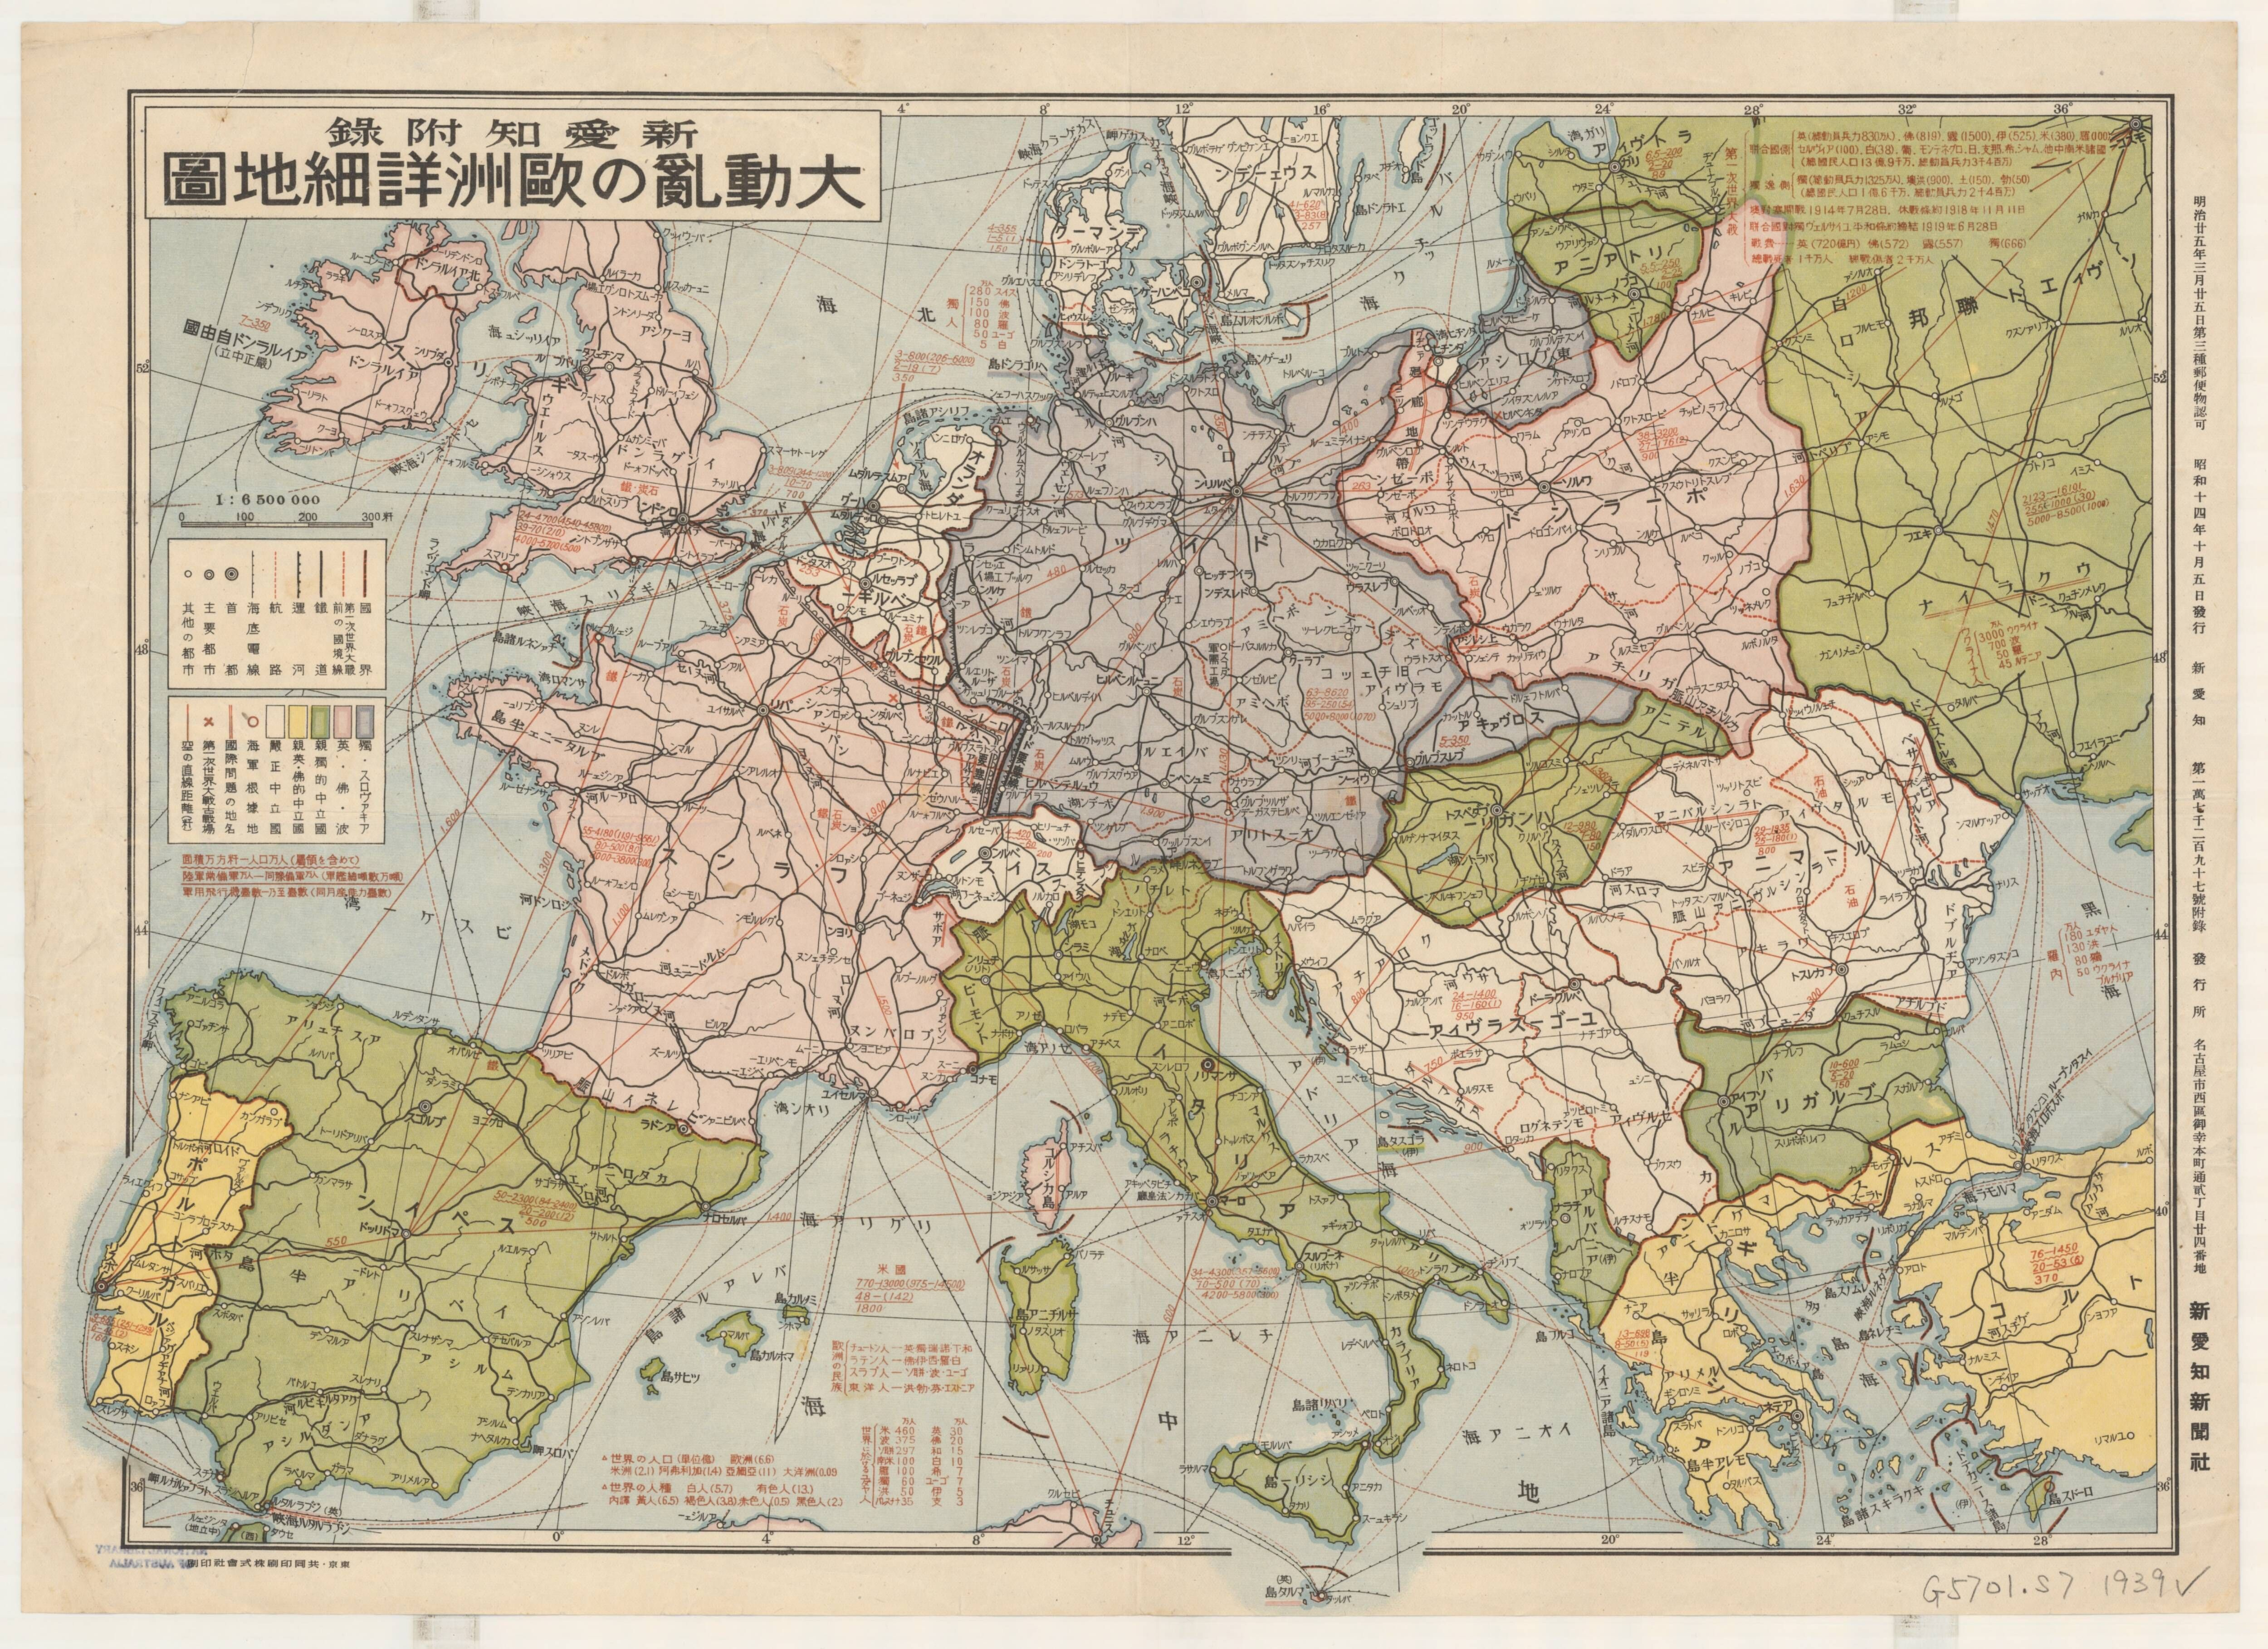 Japanese map of Europe from 1939 | Maps | Pinterest | Map ...